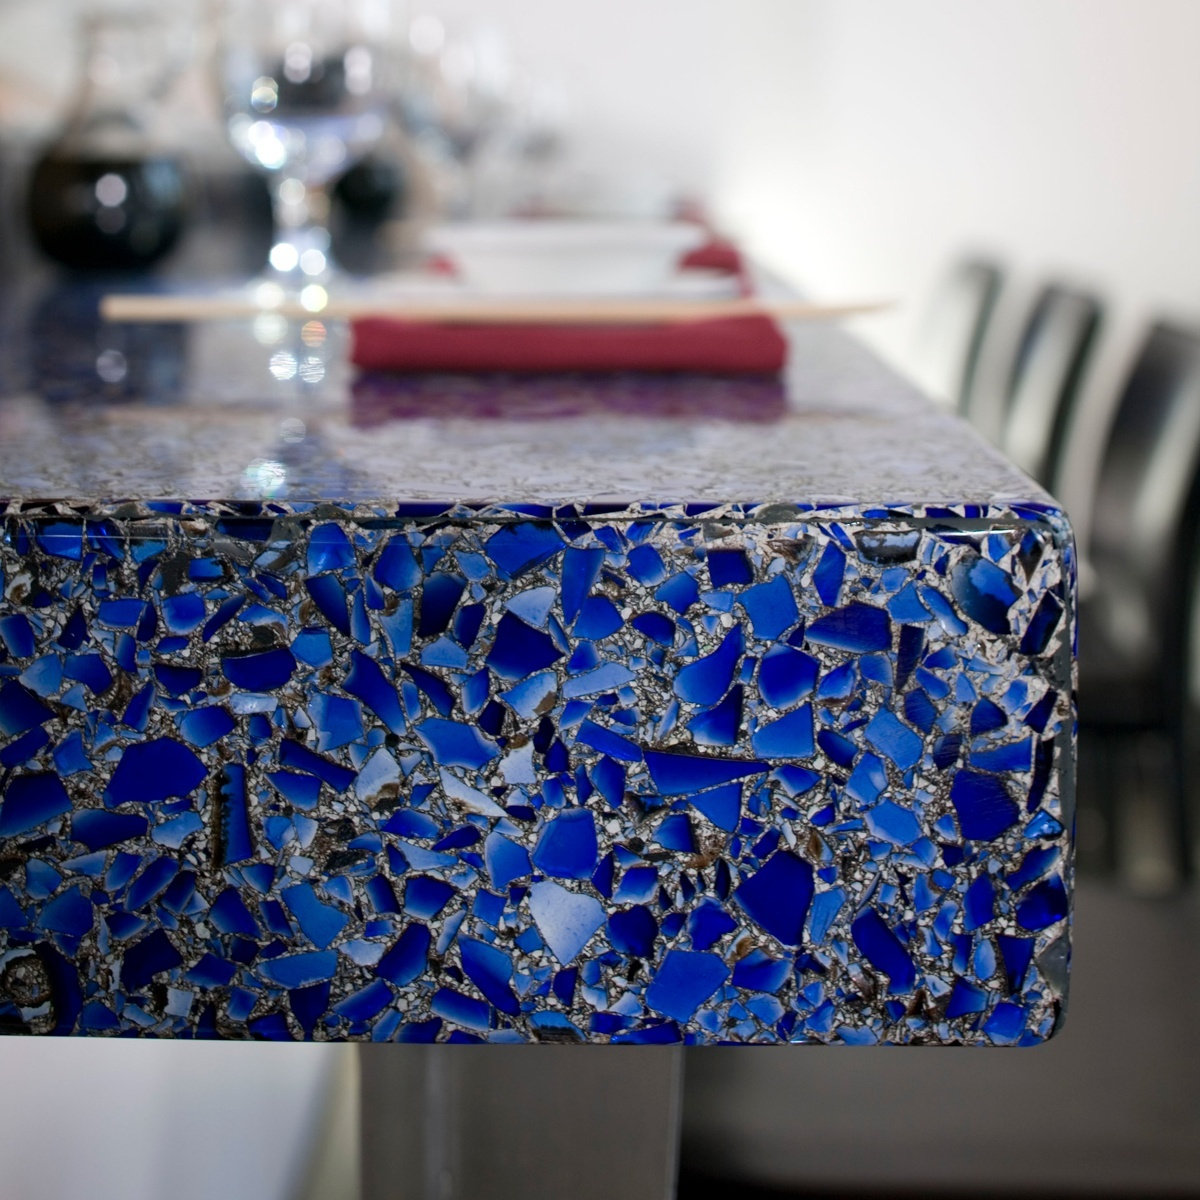 Cobalt_Skyy_Blue_with_Patina_Vetrazzo_recycled_glass_sushi_bar_edge_profile_edited